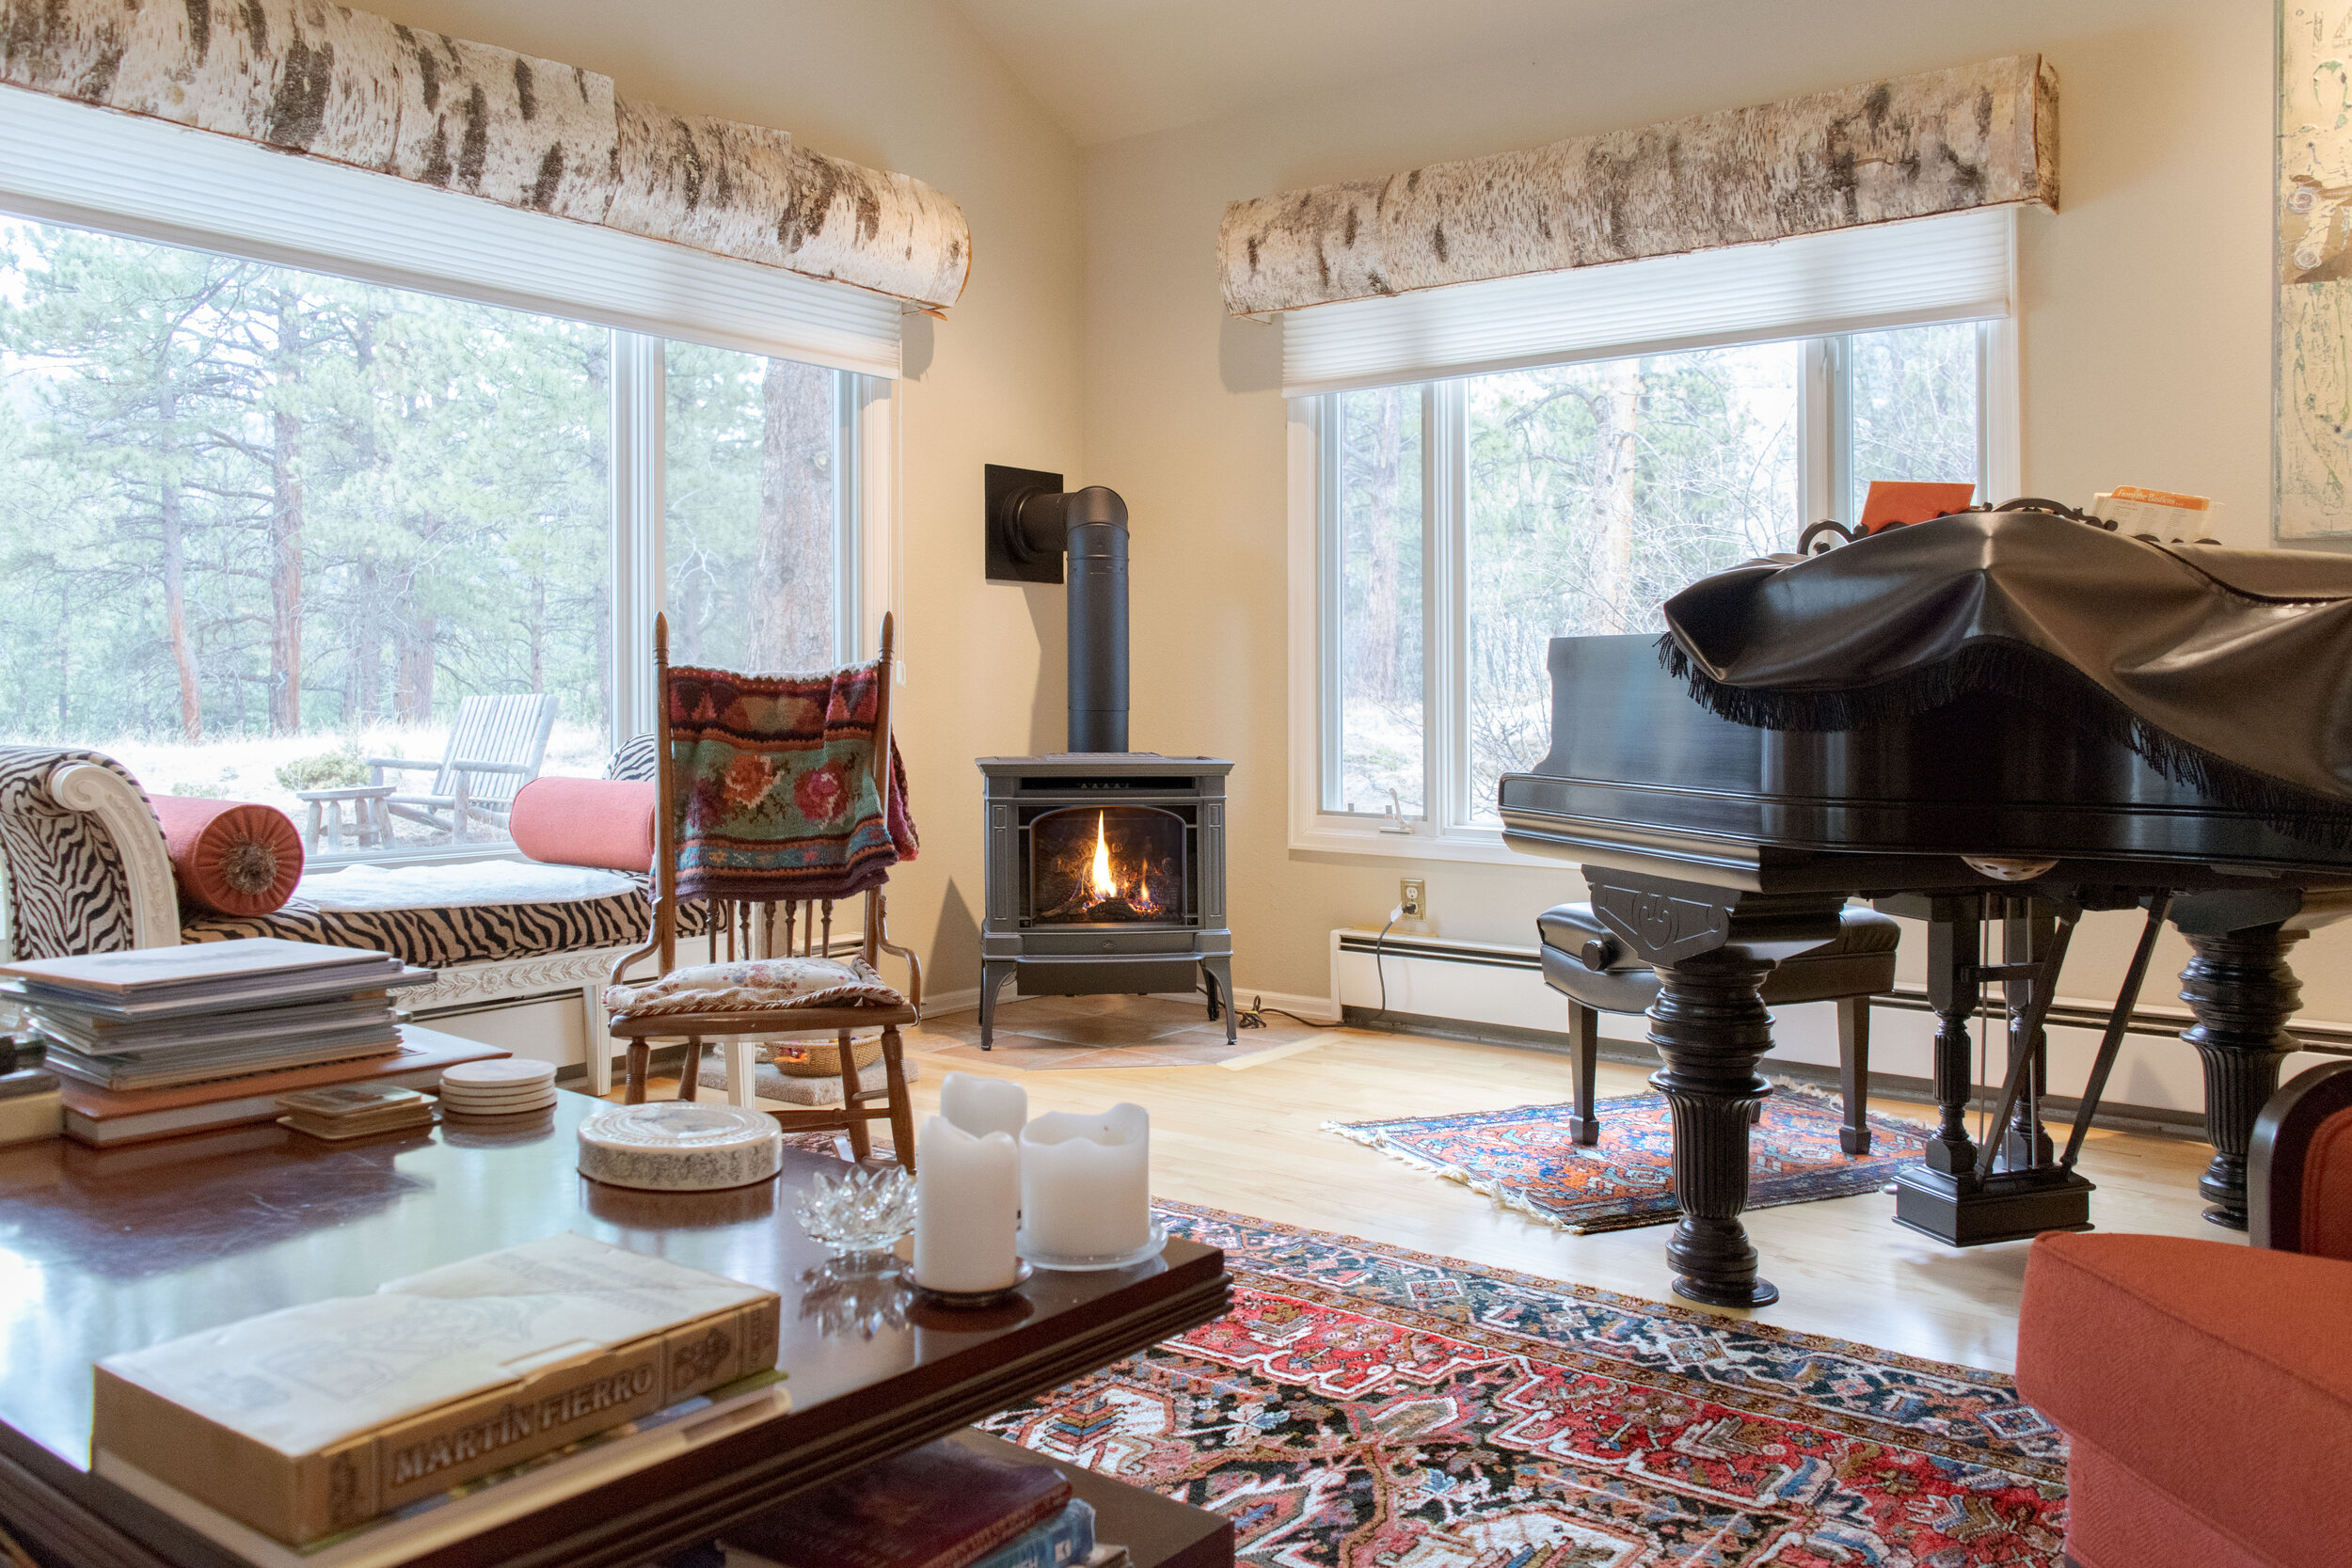 A Lopi Berkshire gas stove in the piano room of a palatially decorated Evergreen, CO home.